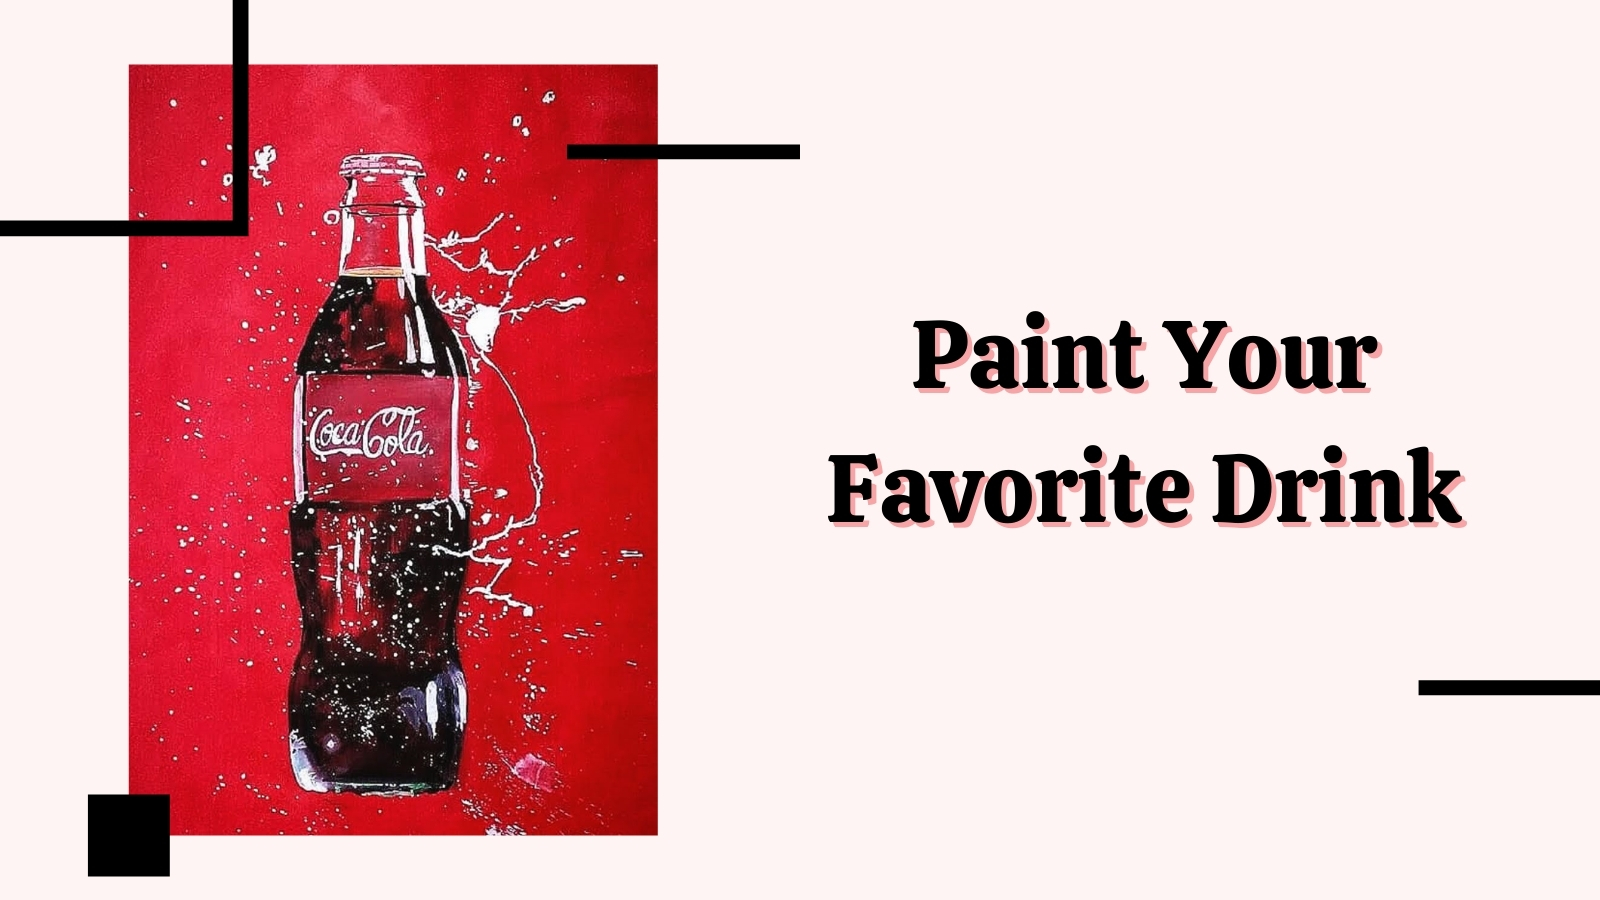 Paint Your Favourite Drink - Art Challenge